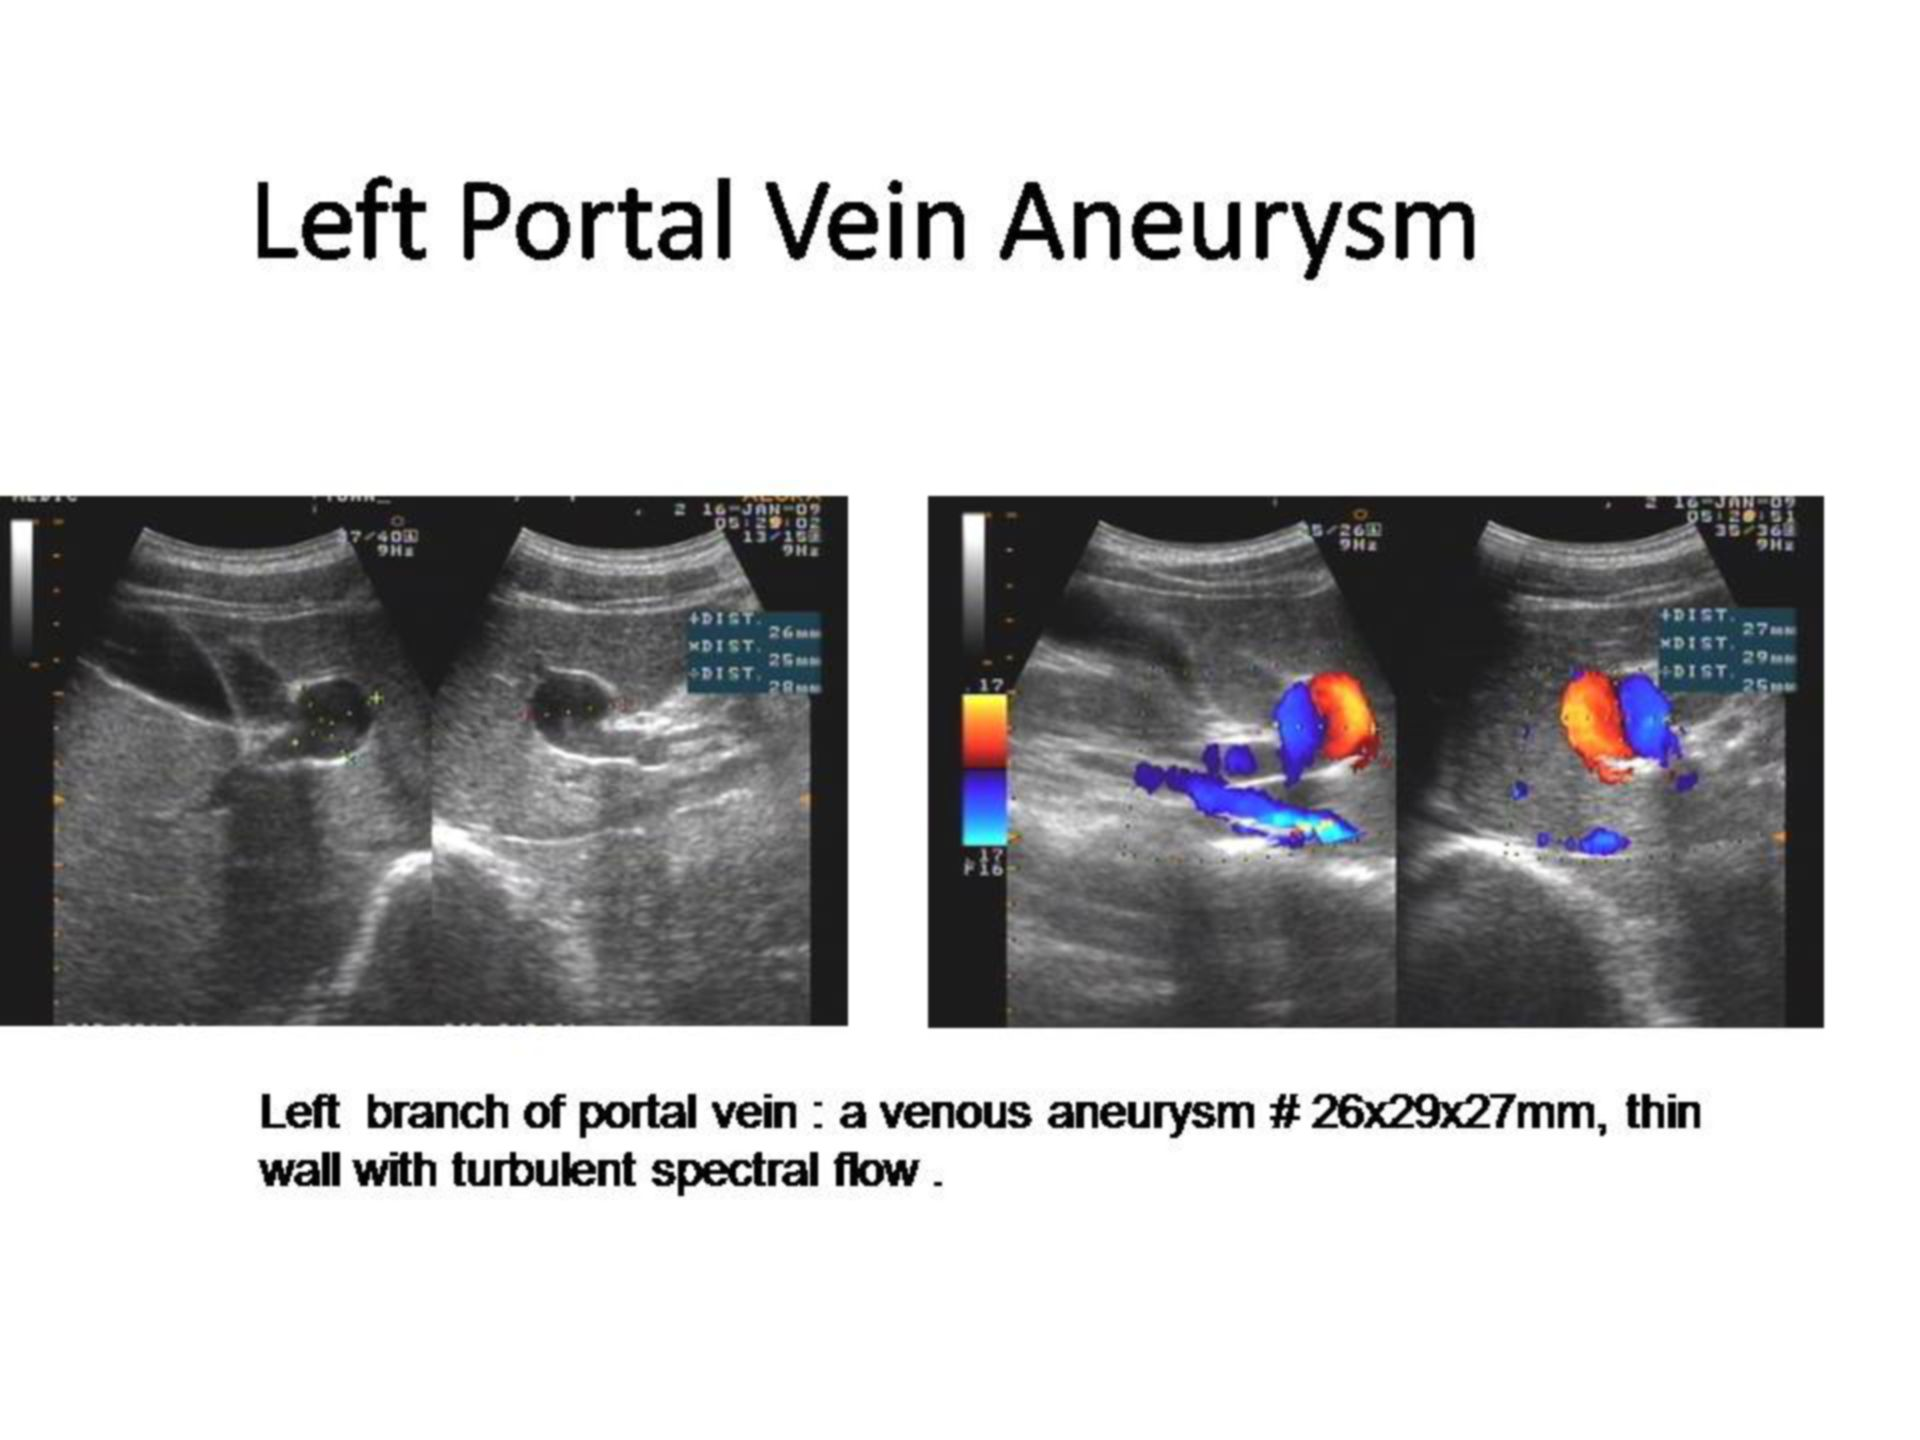 Aneurysma in der linken Vena portae (1)